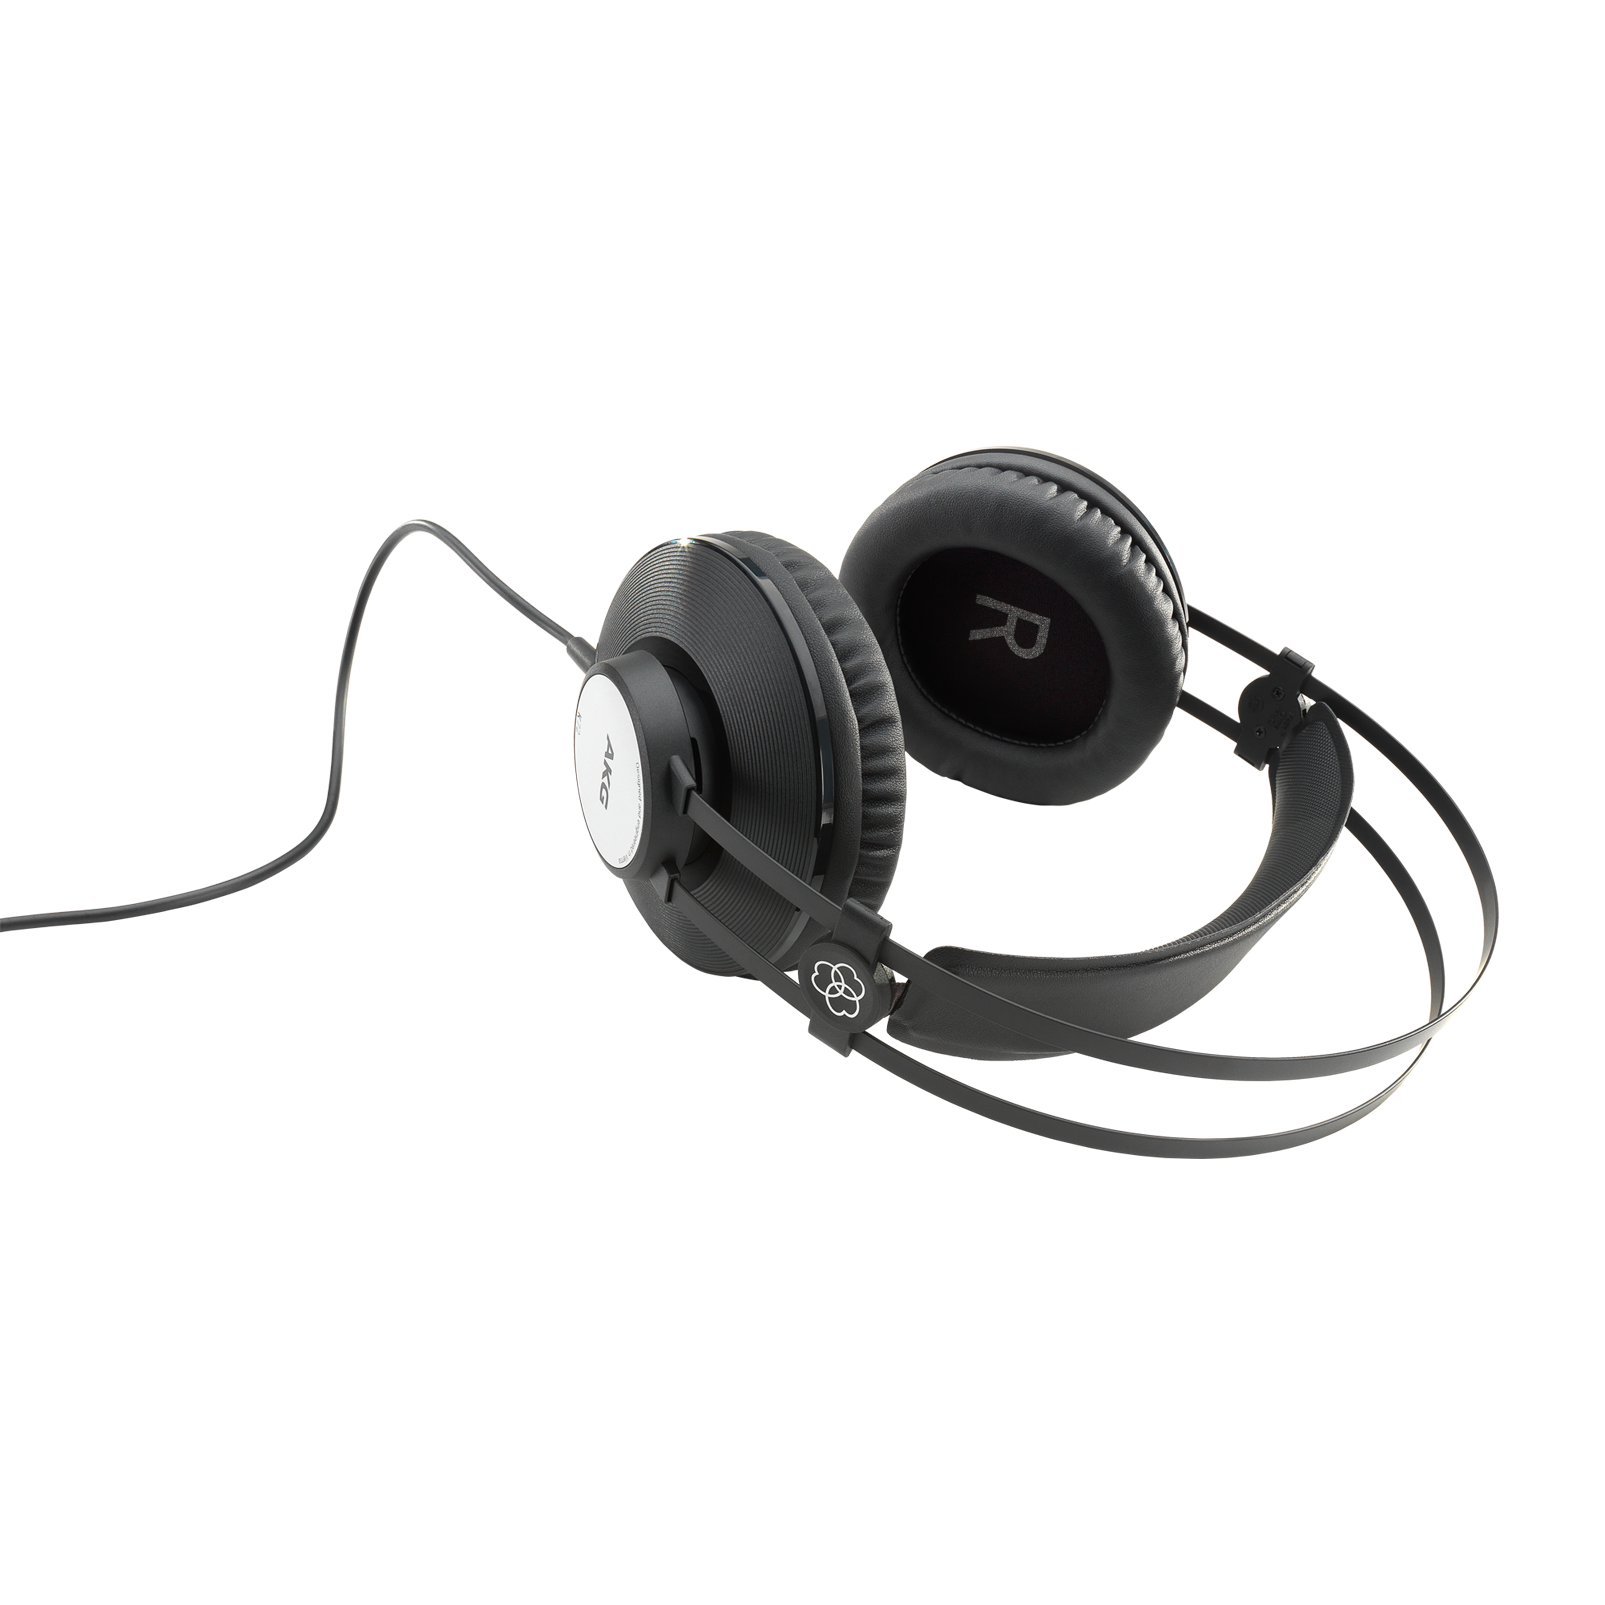 K72 - Black - Closed-back studio headphones - Detailshot 2